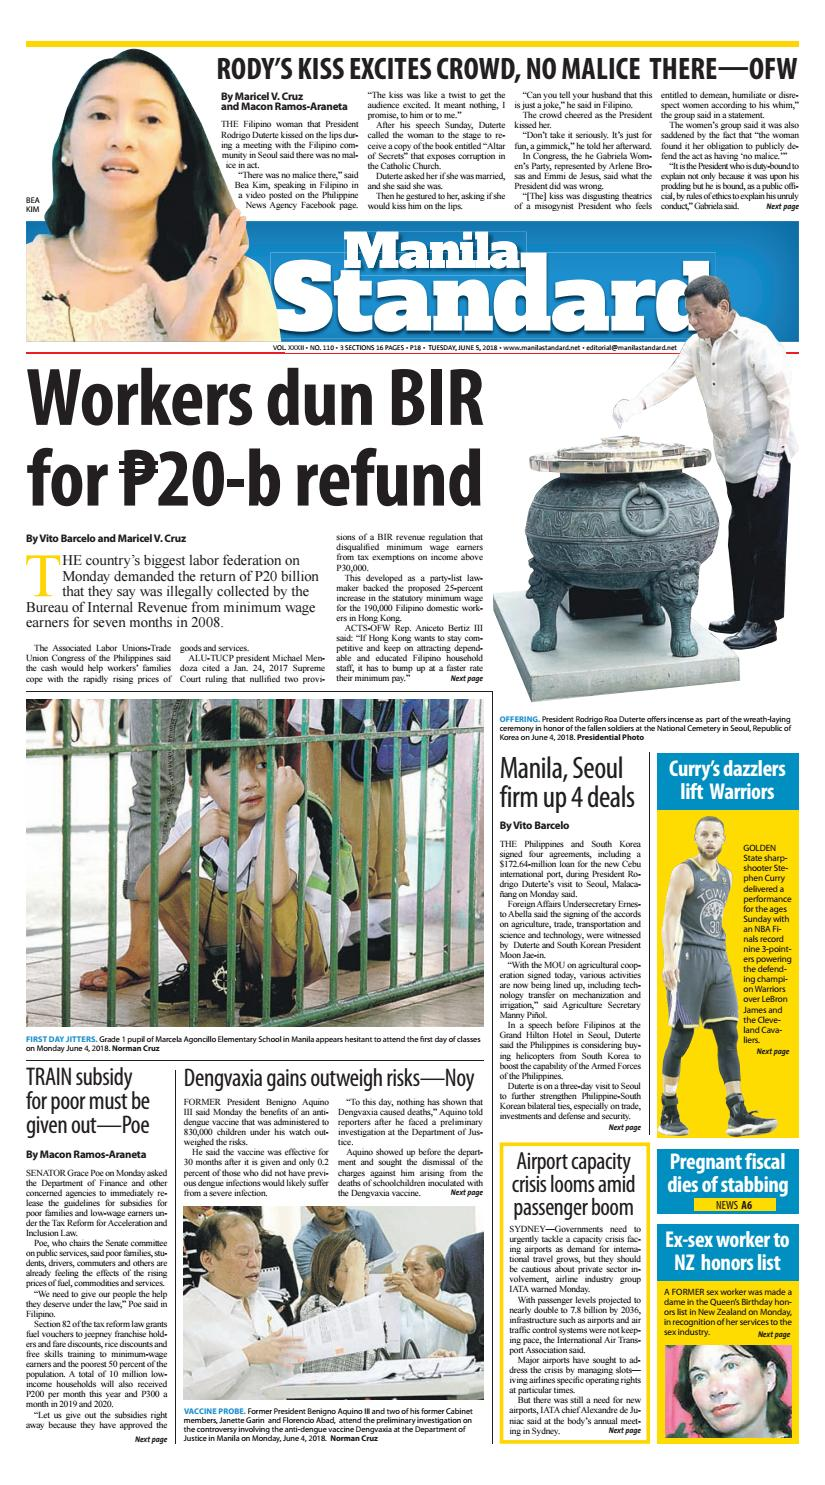 Manila Standard - 2018 June 5 - Tuesday by Manila Standard - issuu